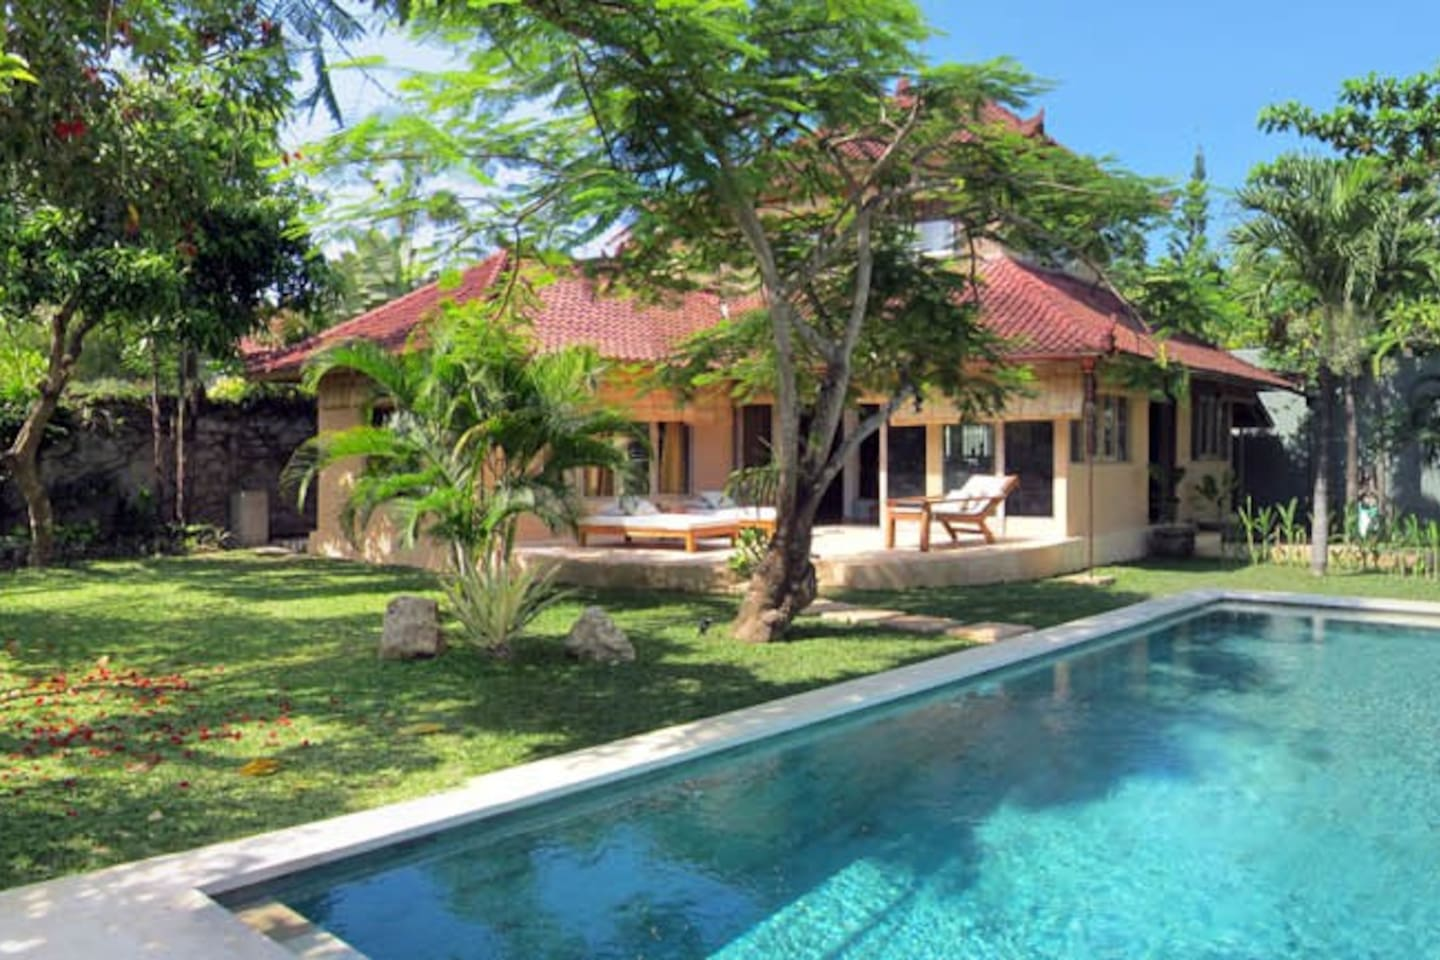 General view of the house, garden and pool. Enjoy a luxurious privacy in the heart of Seminyak.